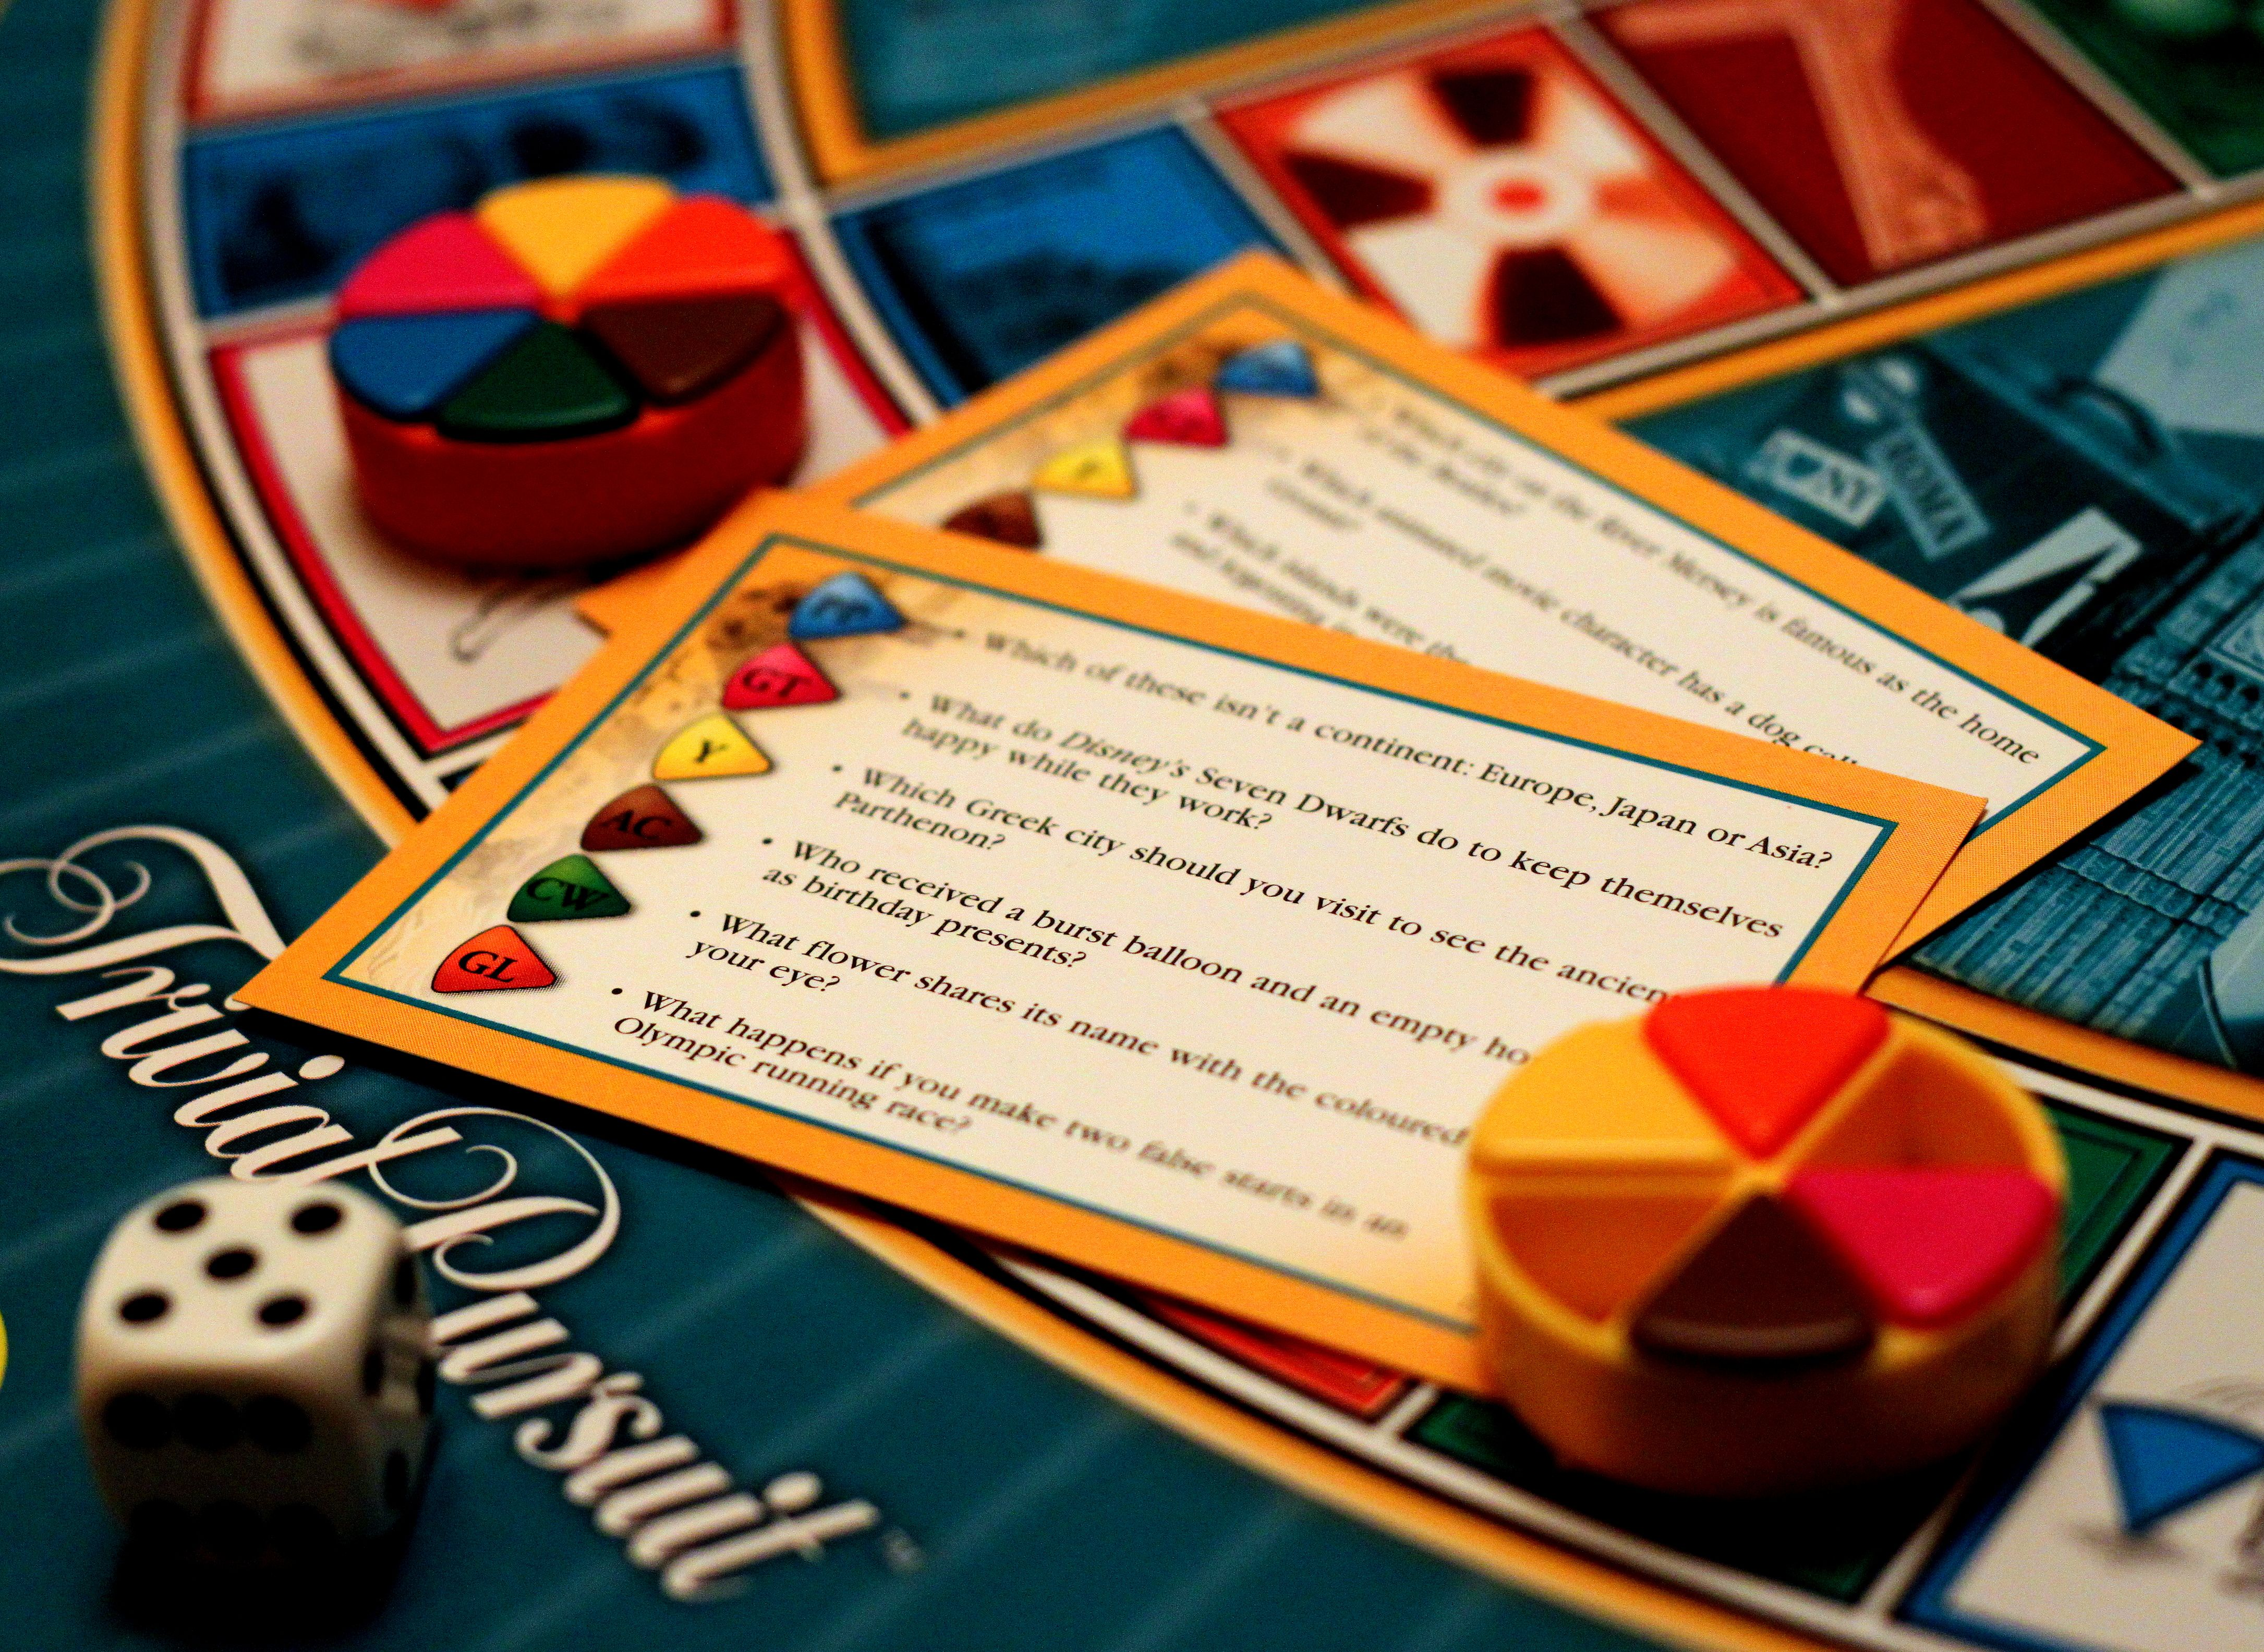 Game piece and cards from Trivial Pursuit